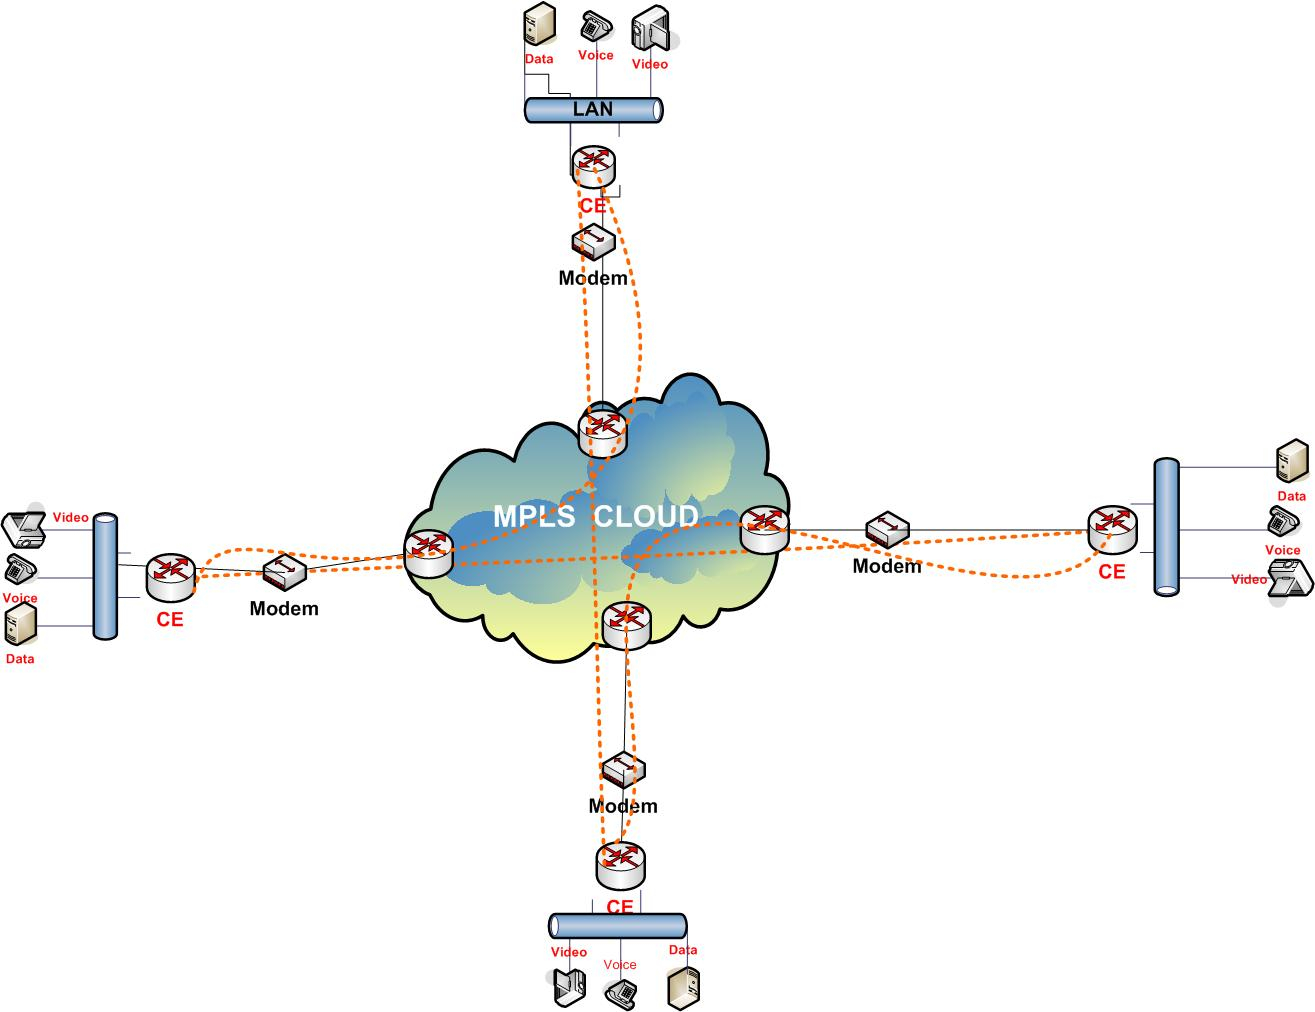 Mpls Network Diagram Voice And Video On Mpls Network Ip Mpls